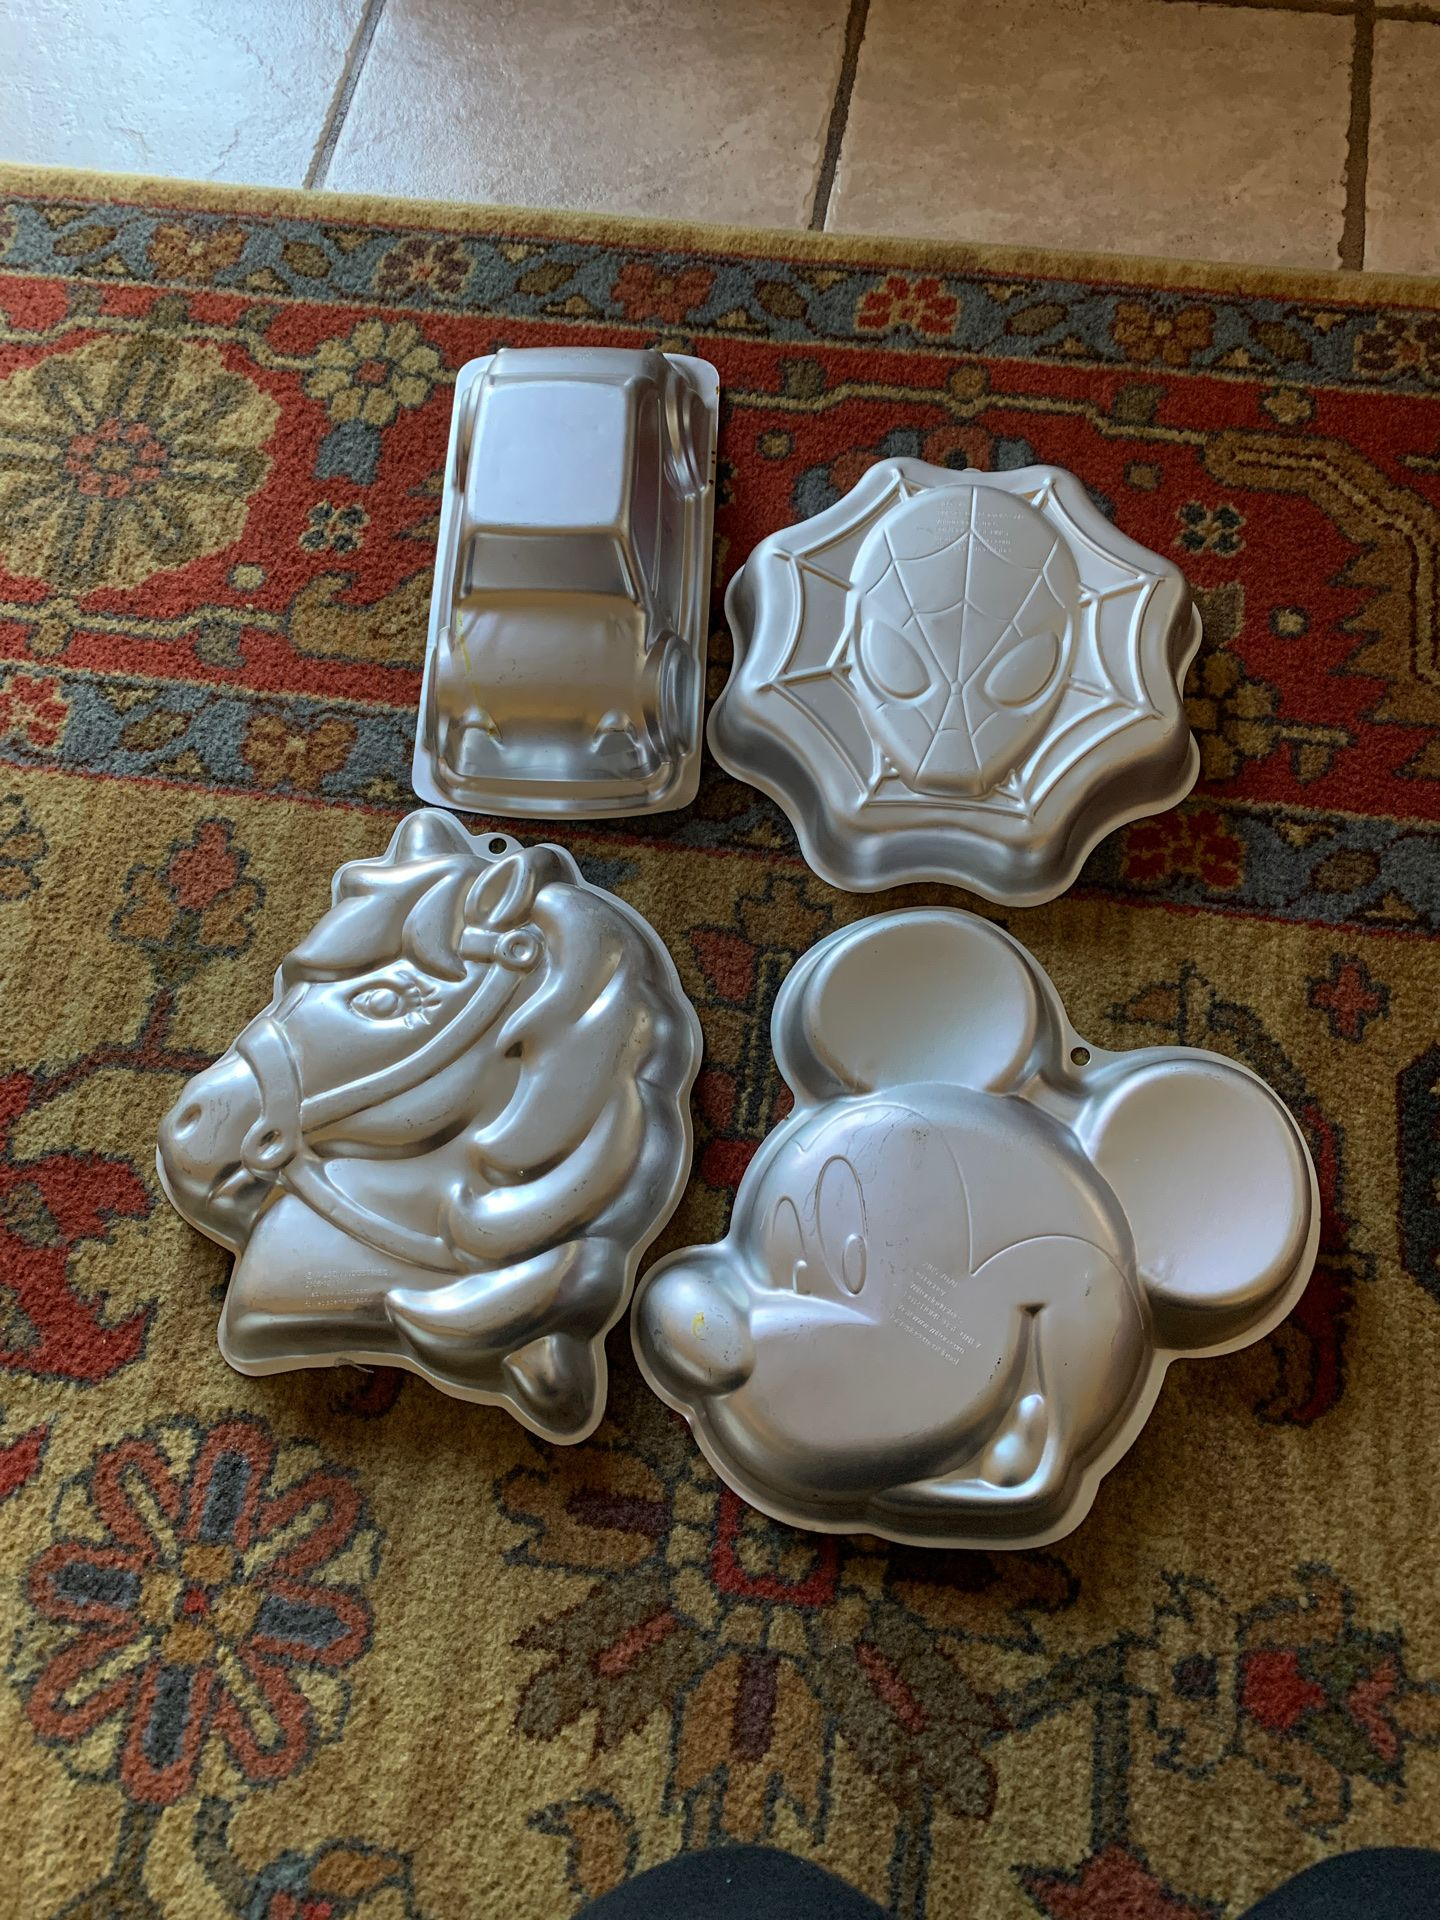 jelly or cake molds